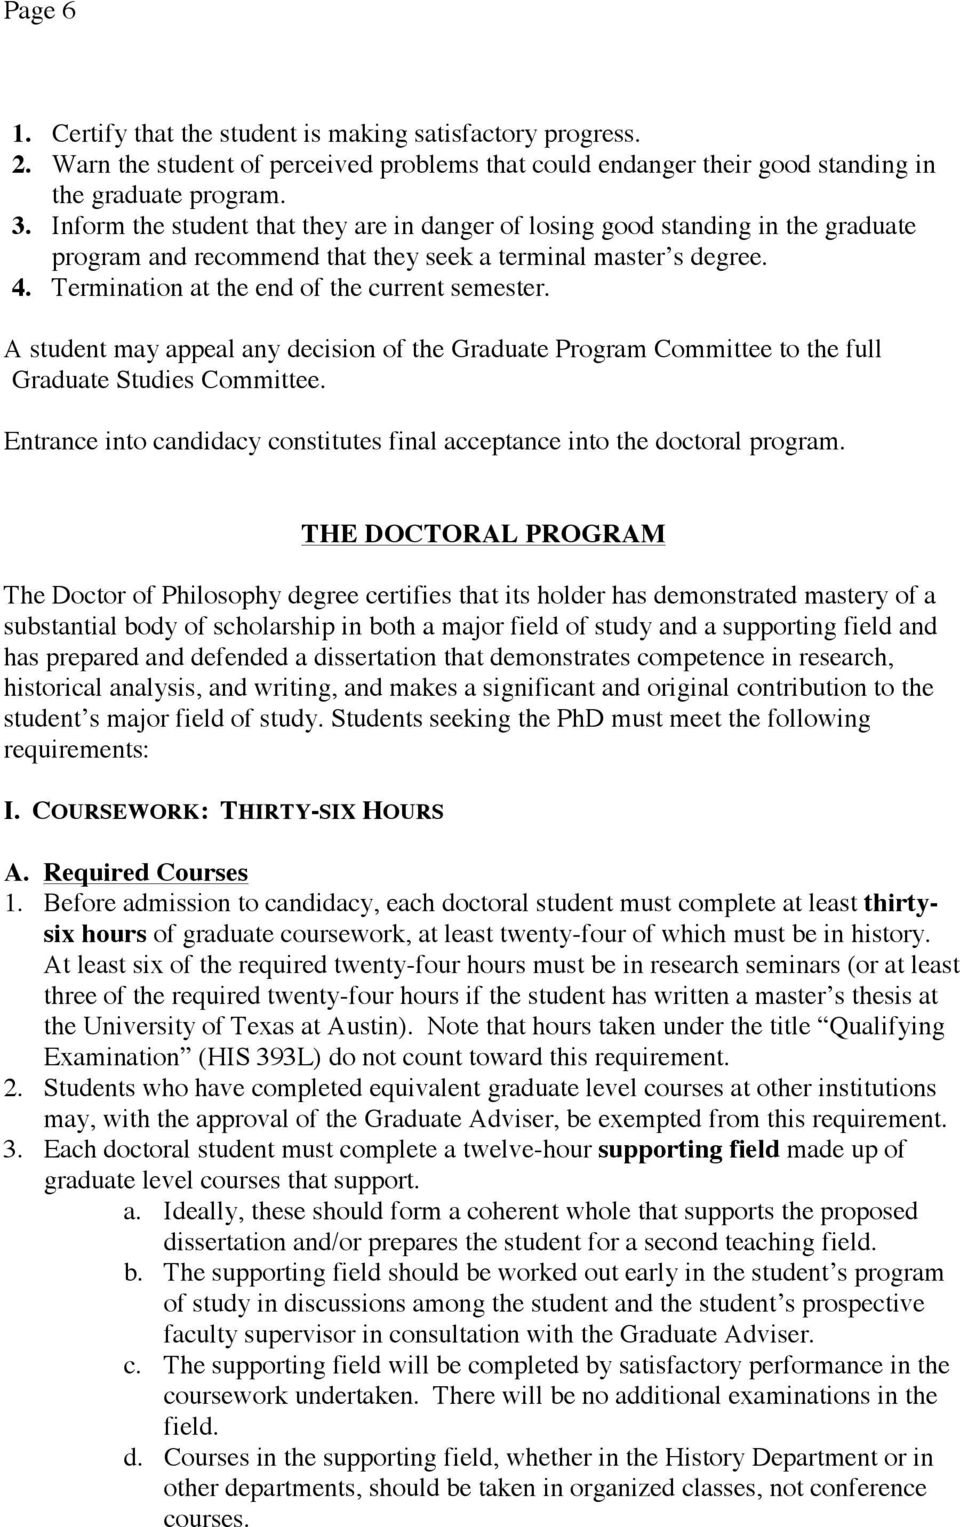 A student may appeal any decision of the Graduate Program Committee to the full Graduate Studies Committee. Entrance into candidacy constitutes final acceptance into the doctoral program.